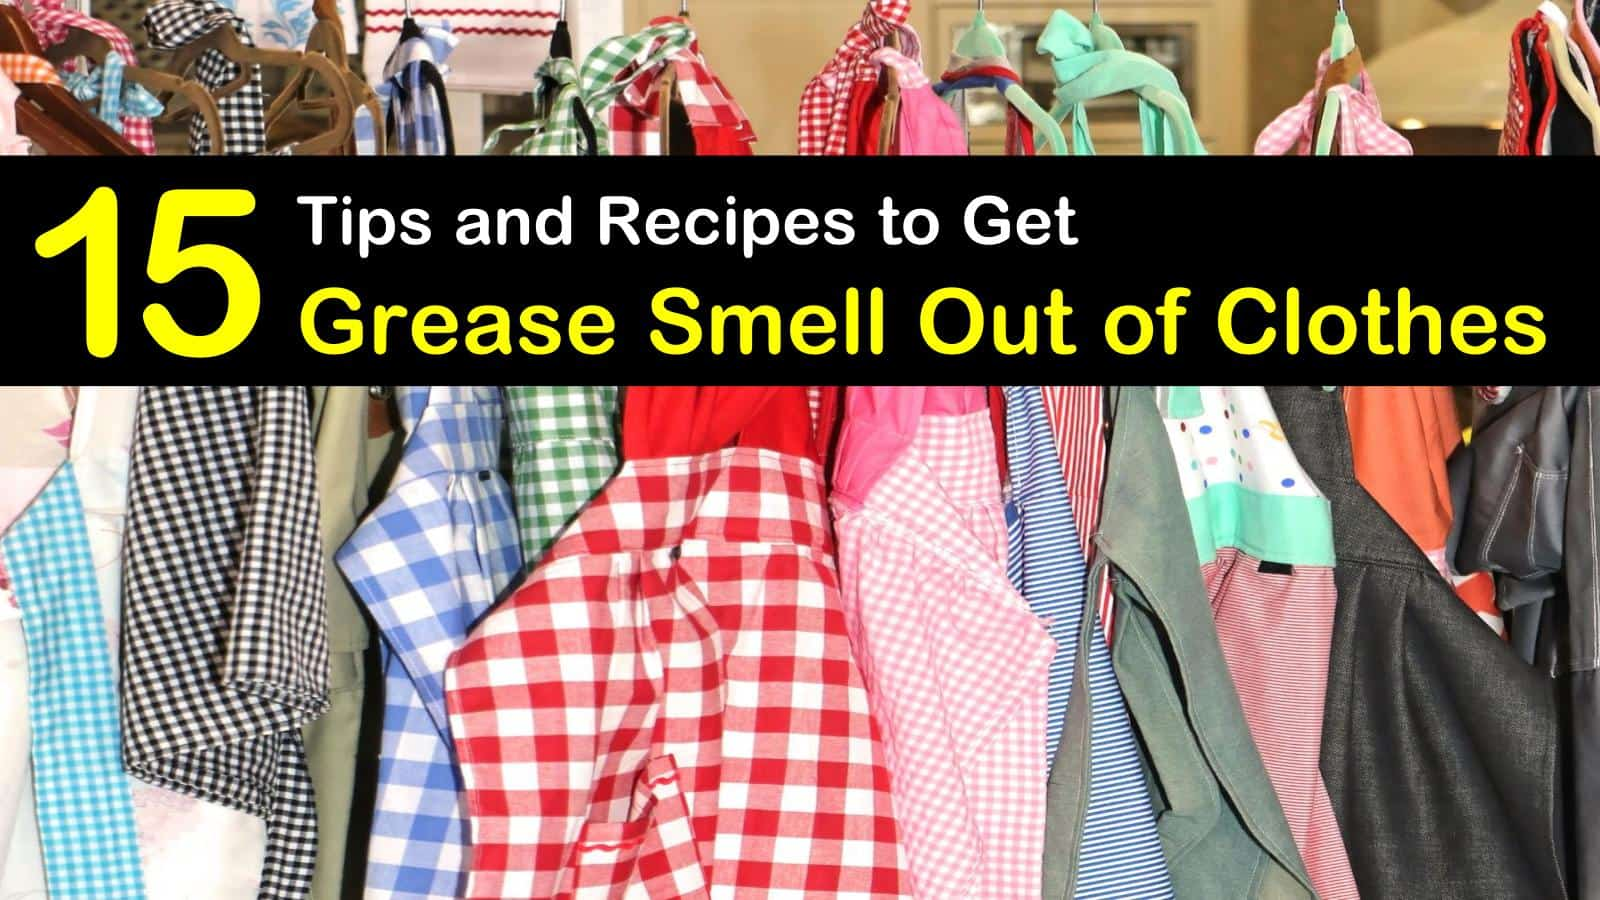 how to get grease smell out of clothes titleimg1